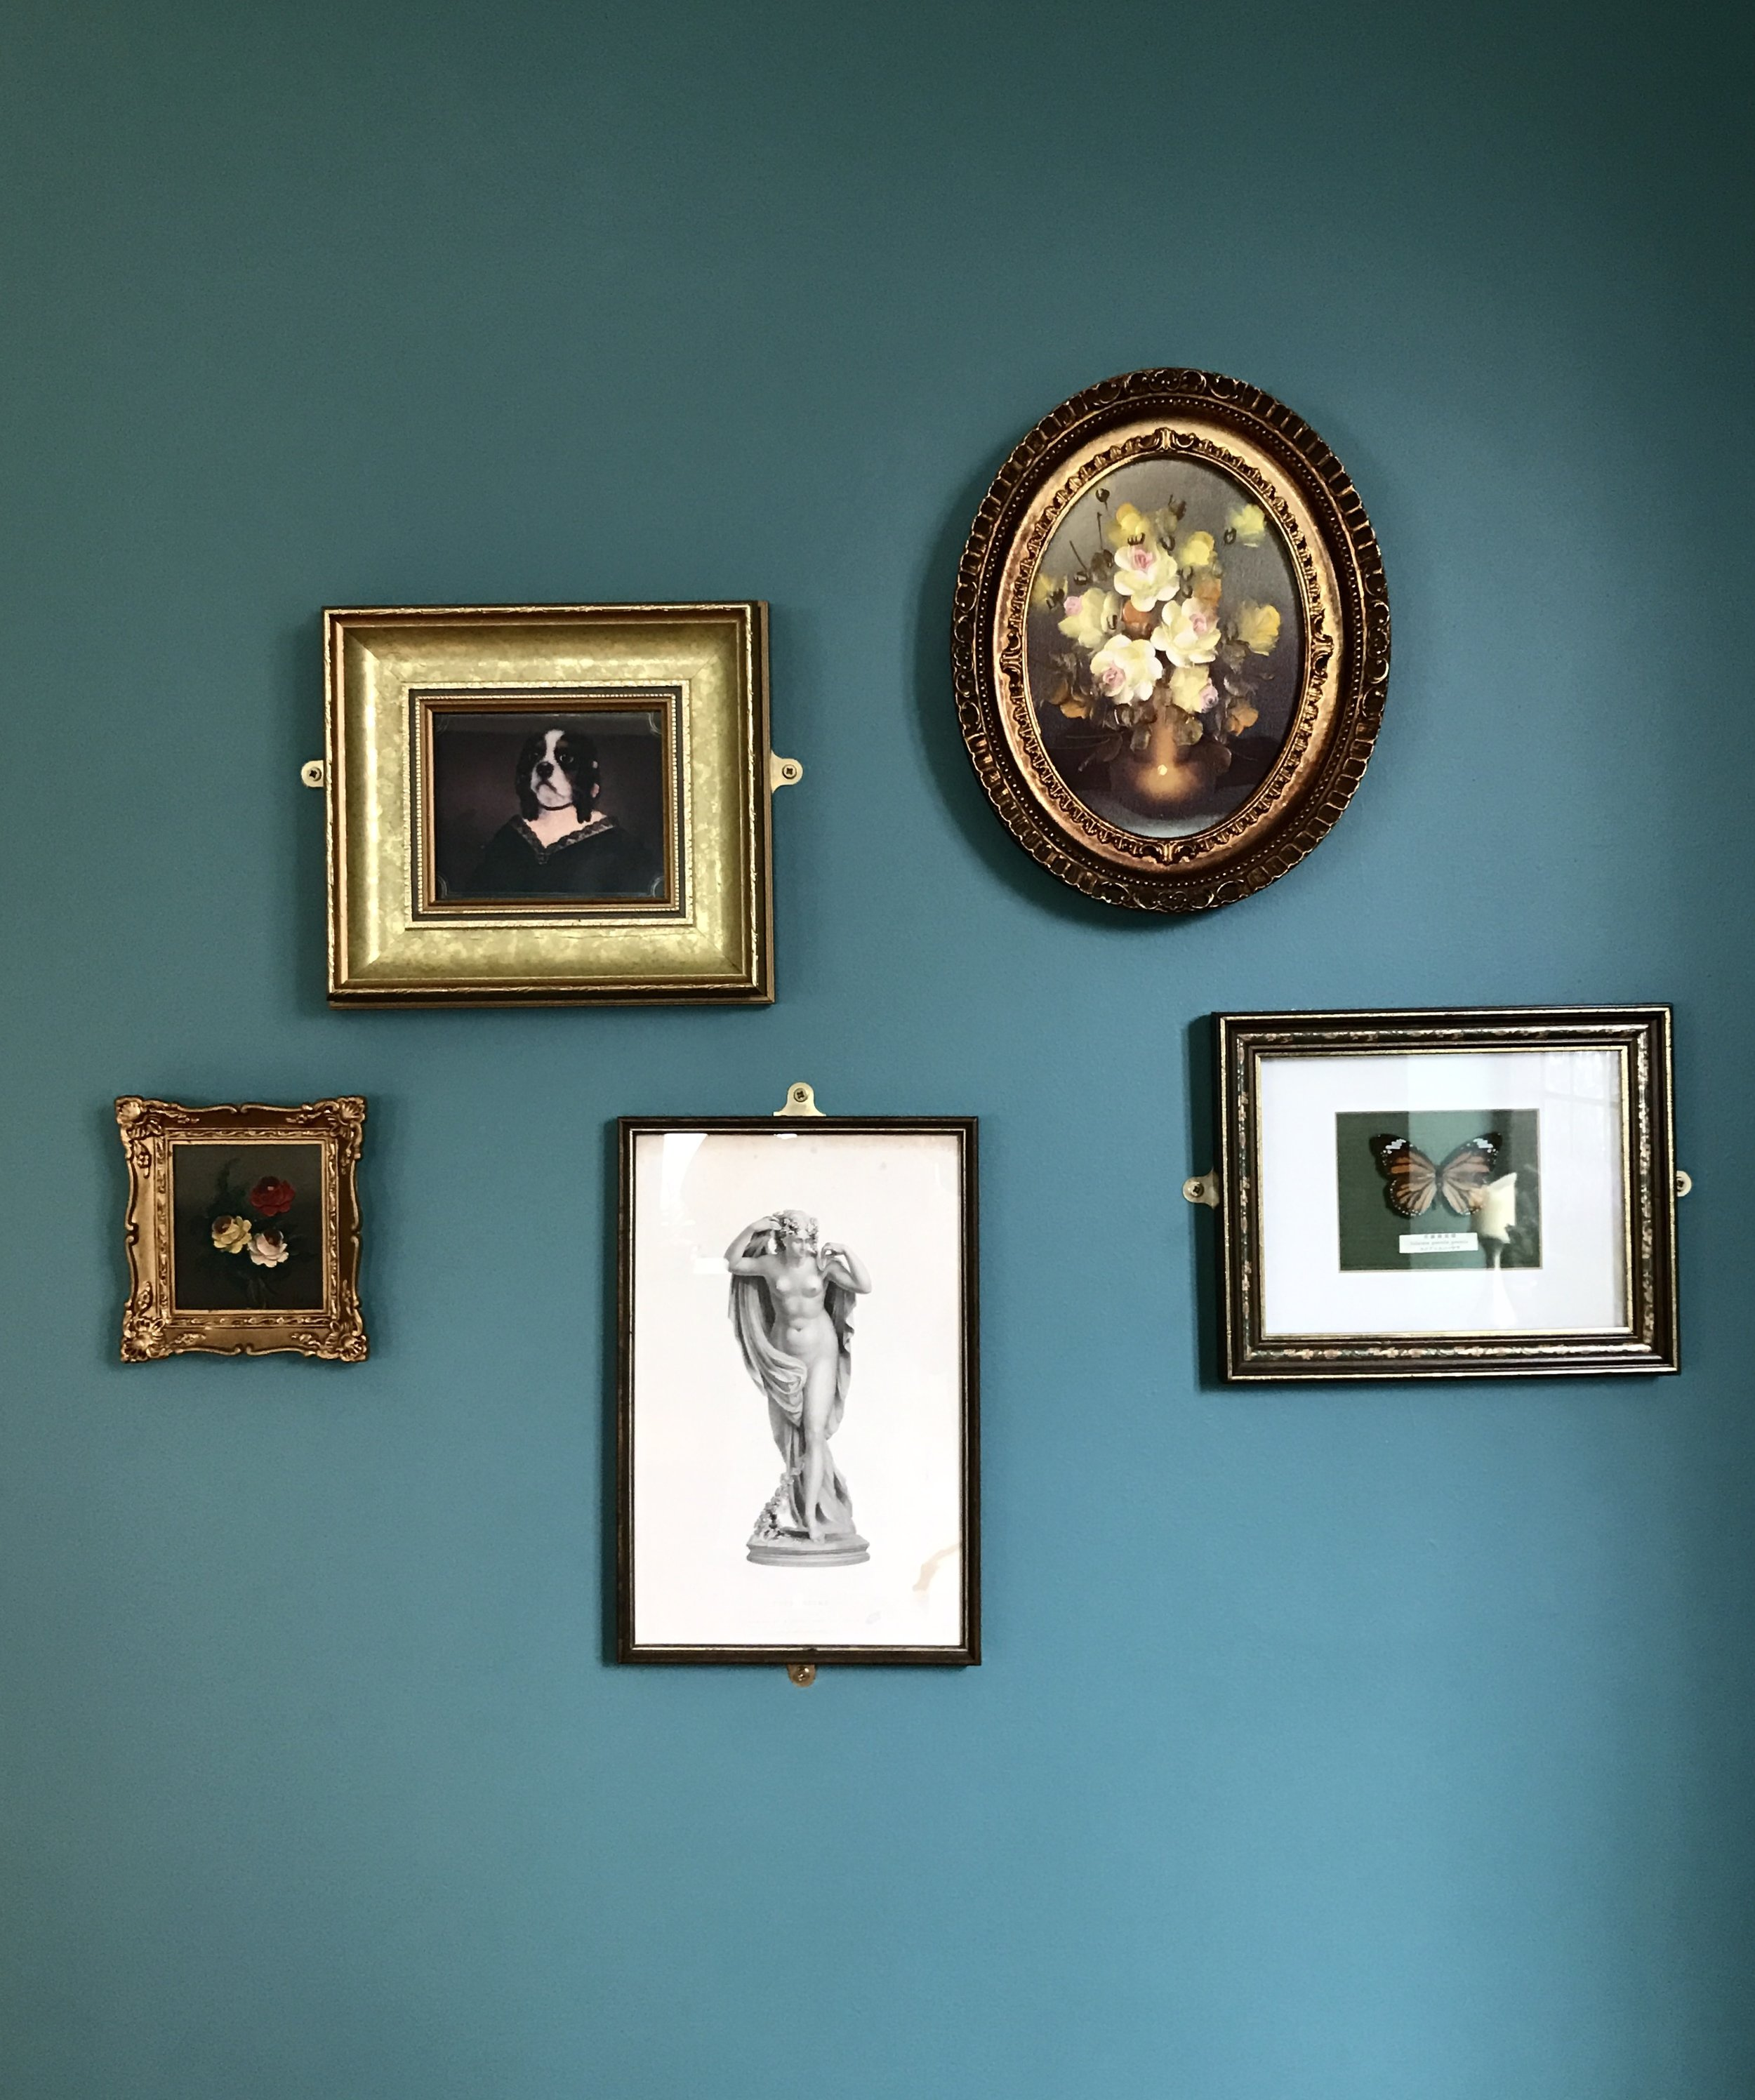 We stock a selection of artwork and frames